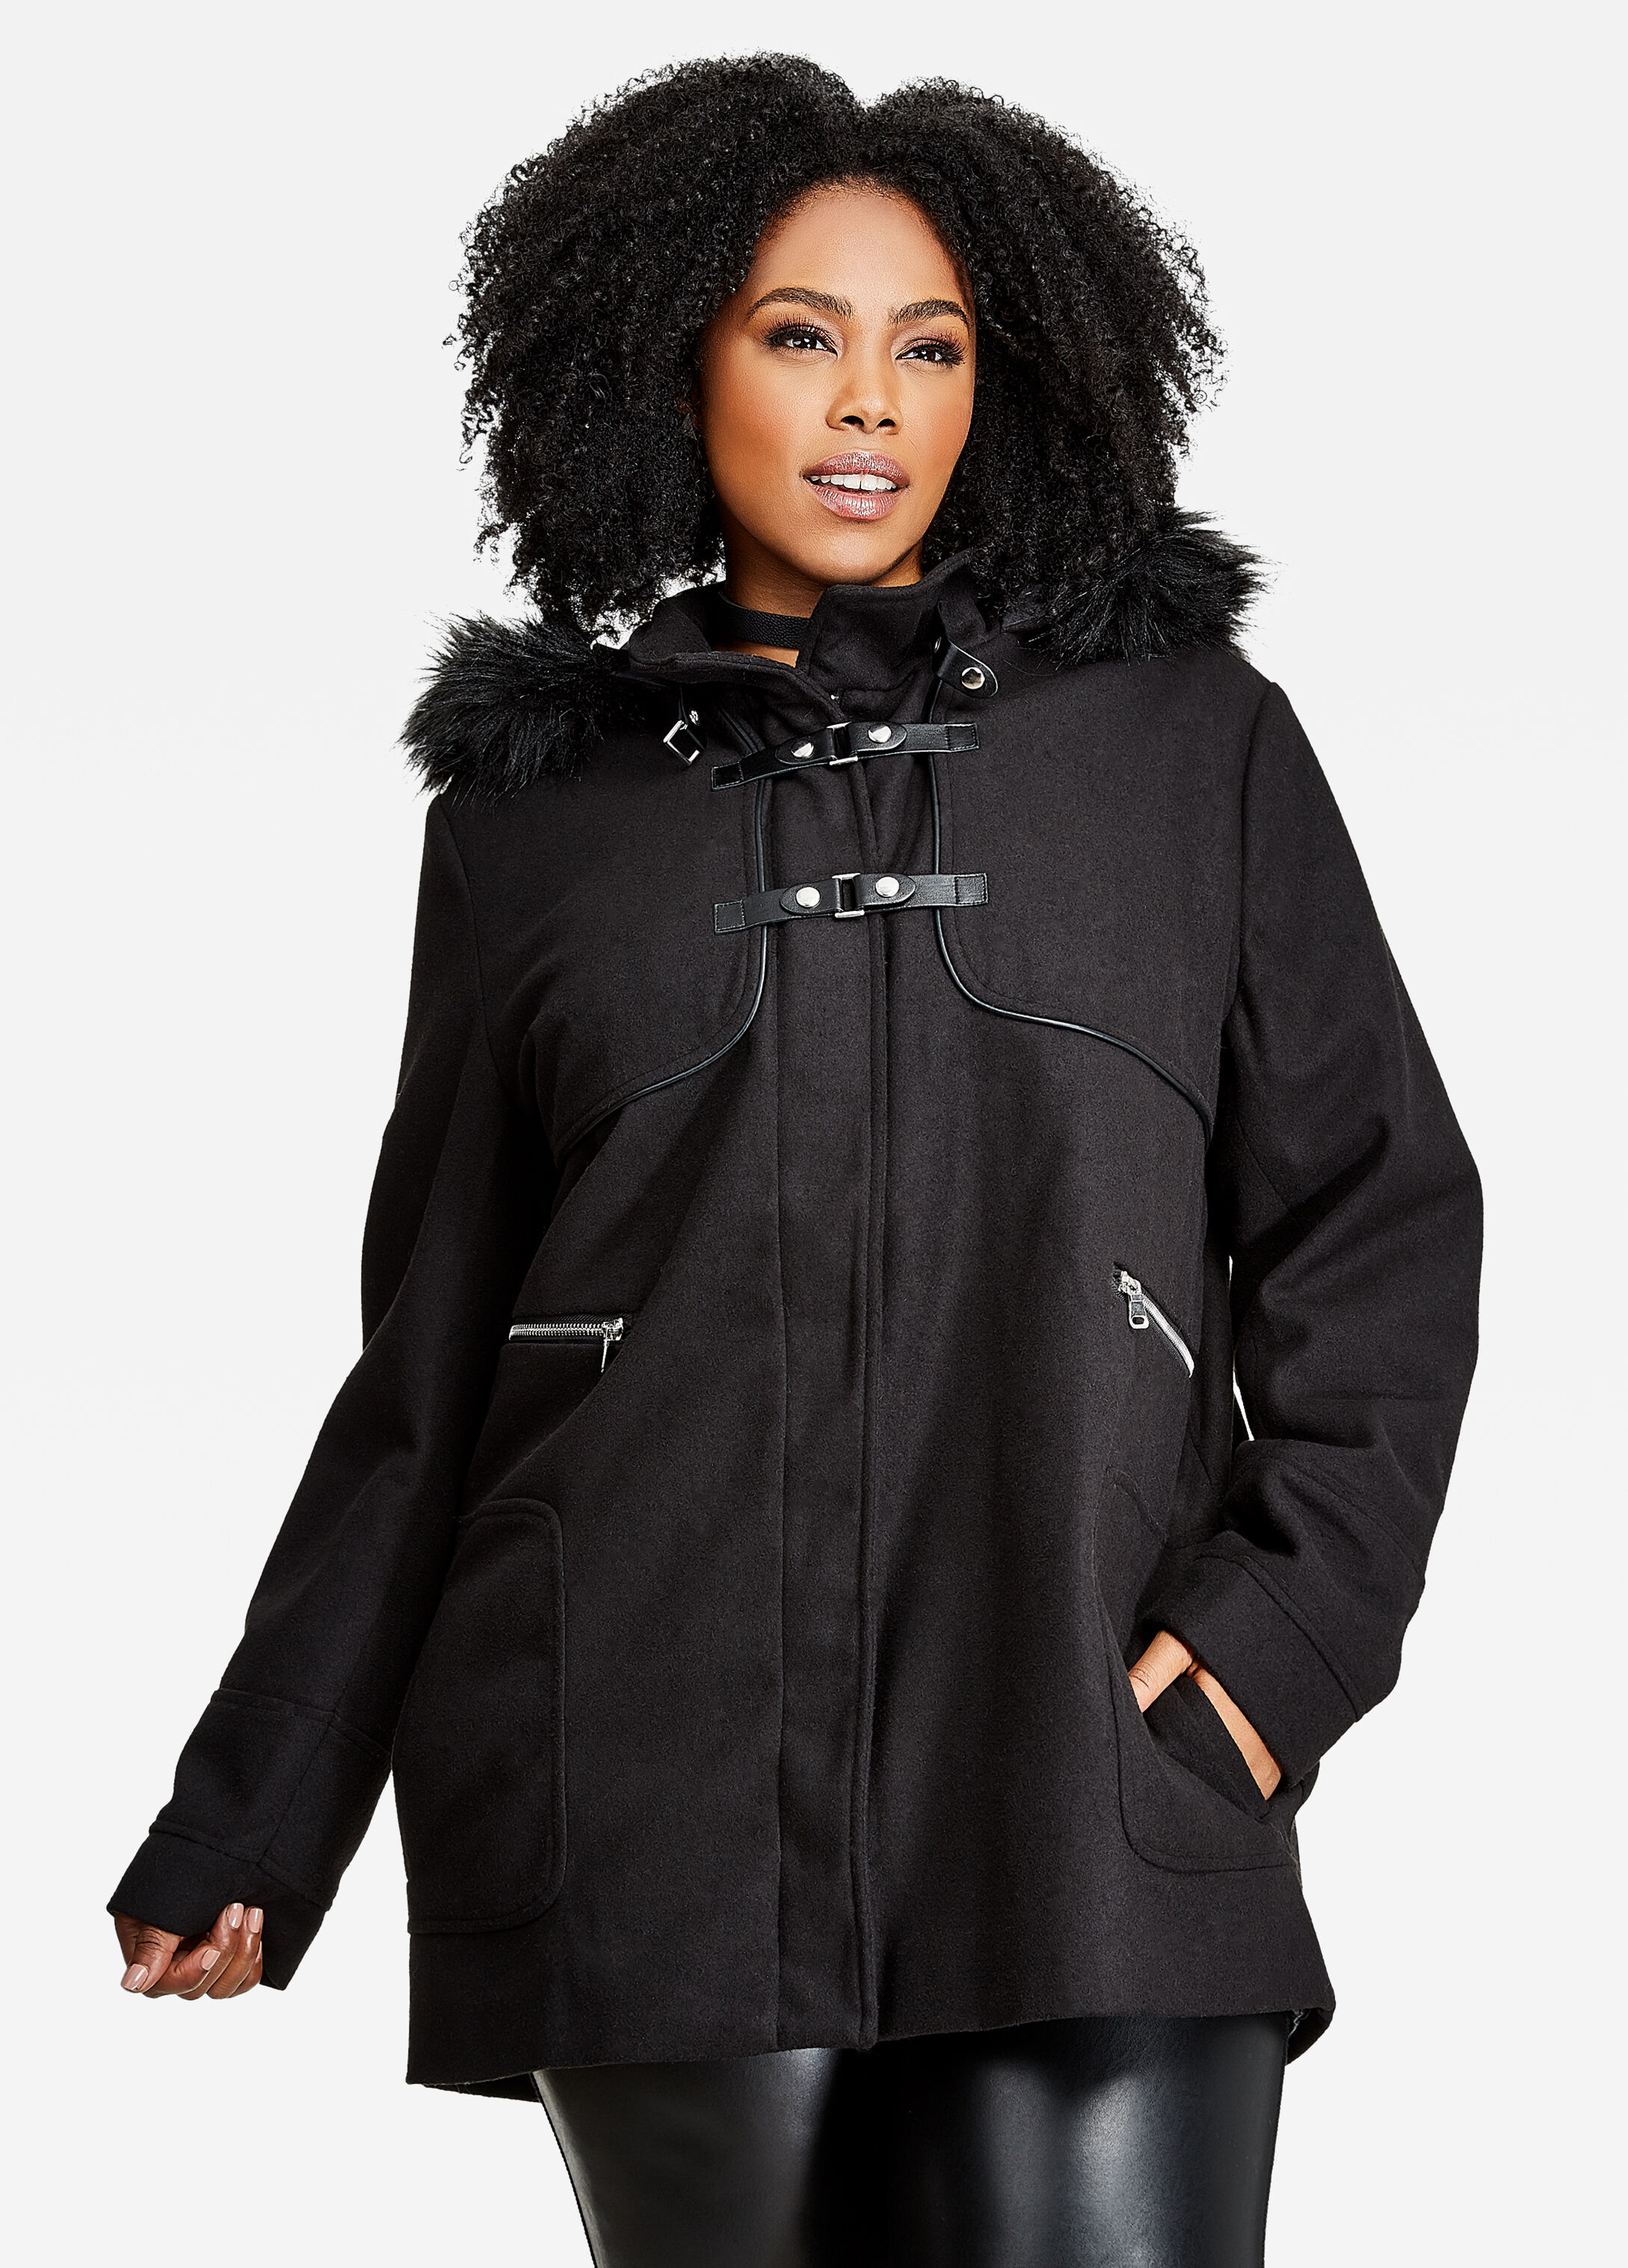 Plus Size Heavy Outerwear - Wool Coat With Faux Fur Trim and Hood